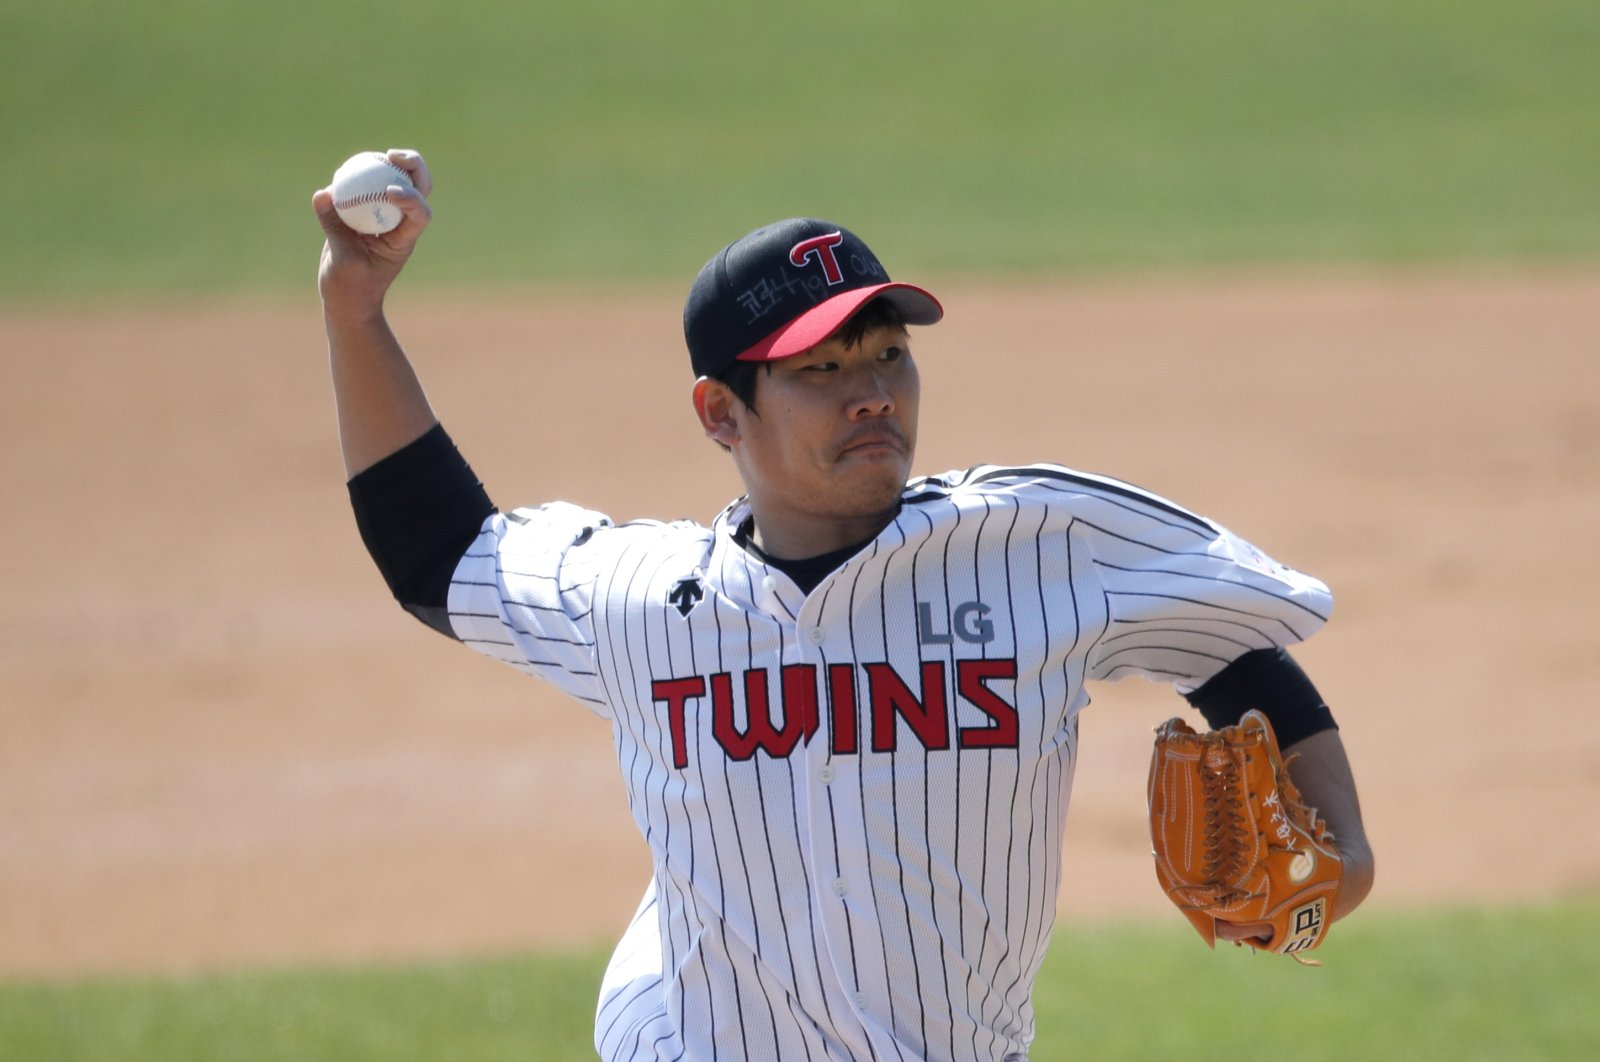 """Letters reading """"Corona 19 Out"""" is seen on the cap of LG Twins baseball team's pitcher Jeong Chan-heon as a part of campaign to overcome the coronavirus during an intrasquad baseball game in Seoul, South Korea, Sunday, April 5, 2020. (AP Photo)"""